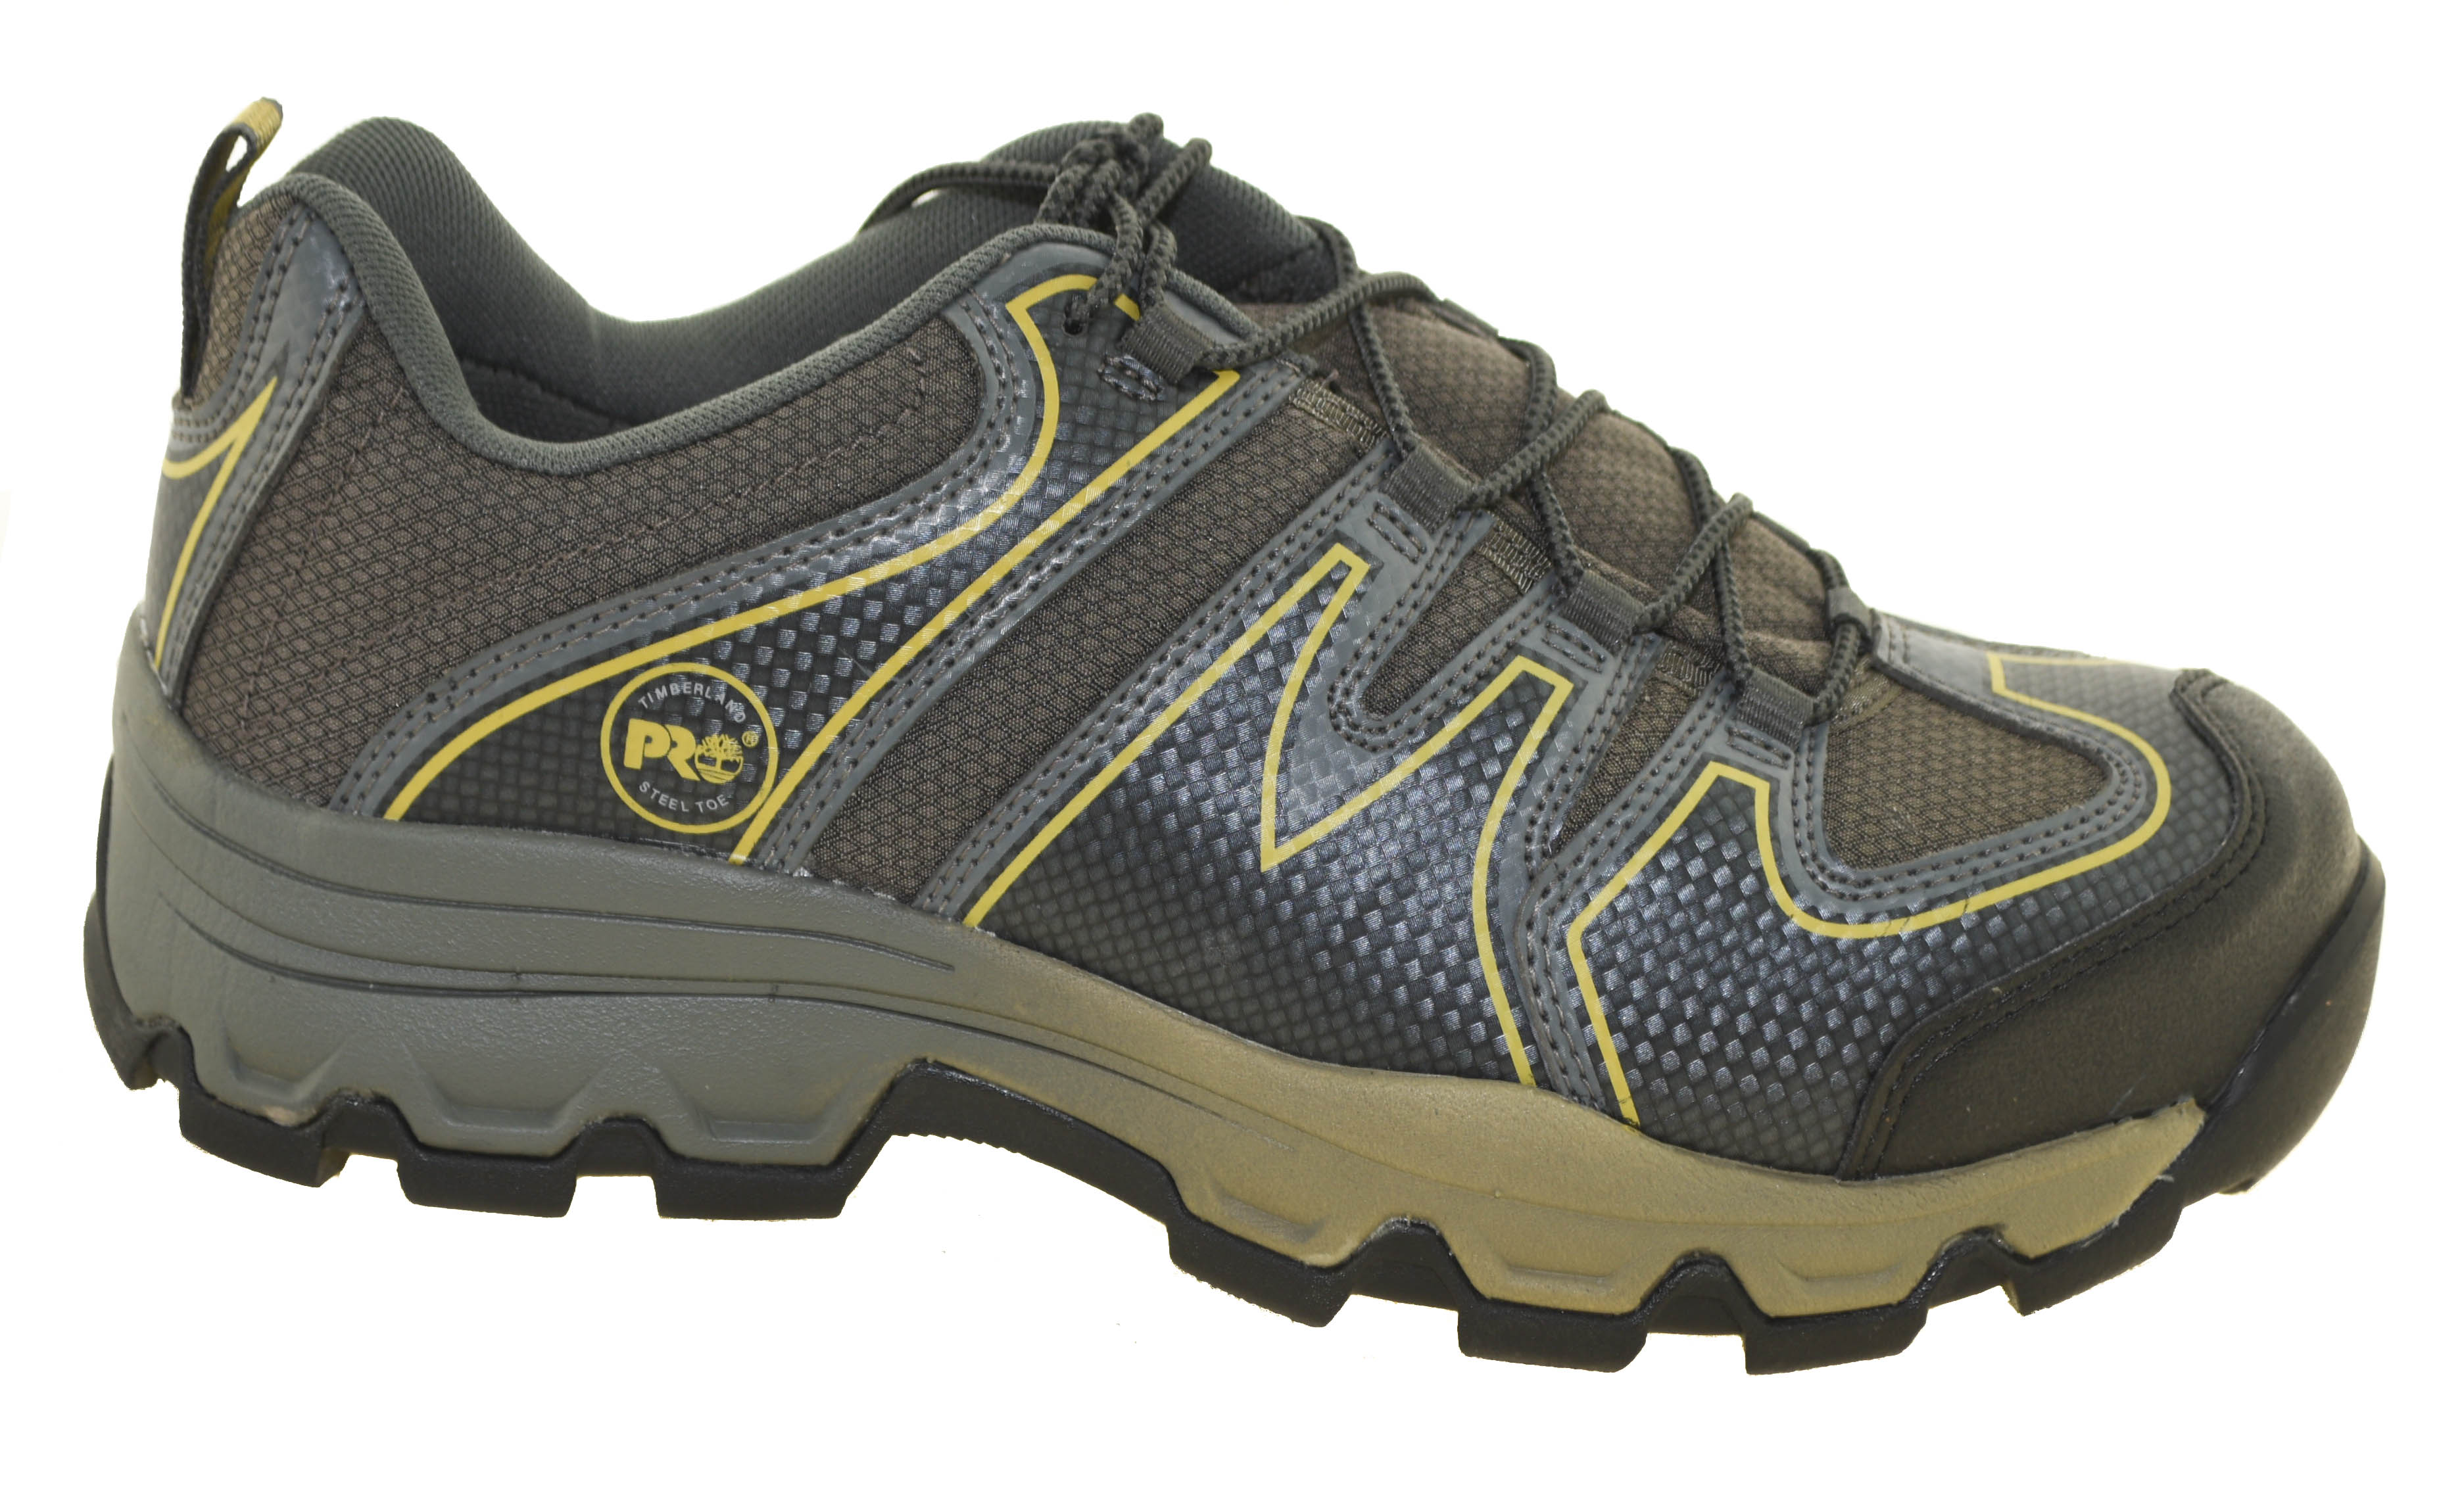 24741dee7e6f0 Details about Timberland Pro Men's Rockscape Low A11P6 Steel Toe Work Shoes